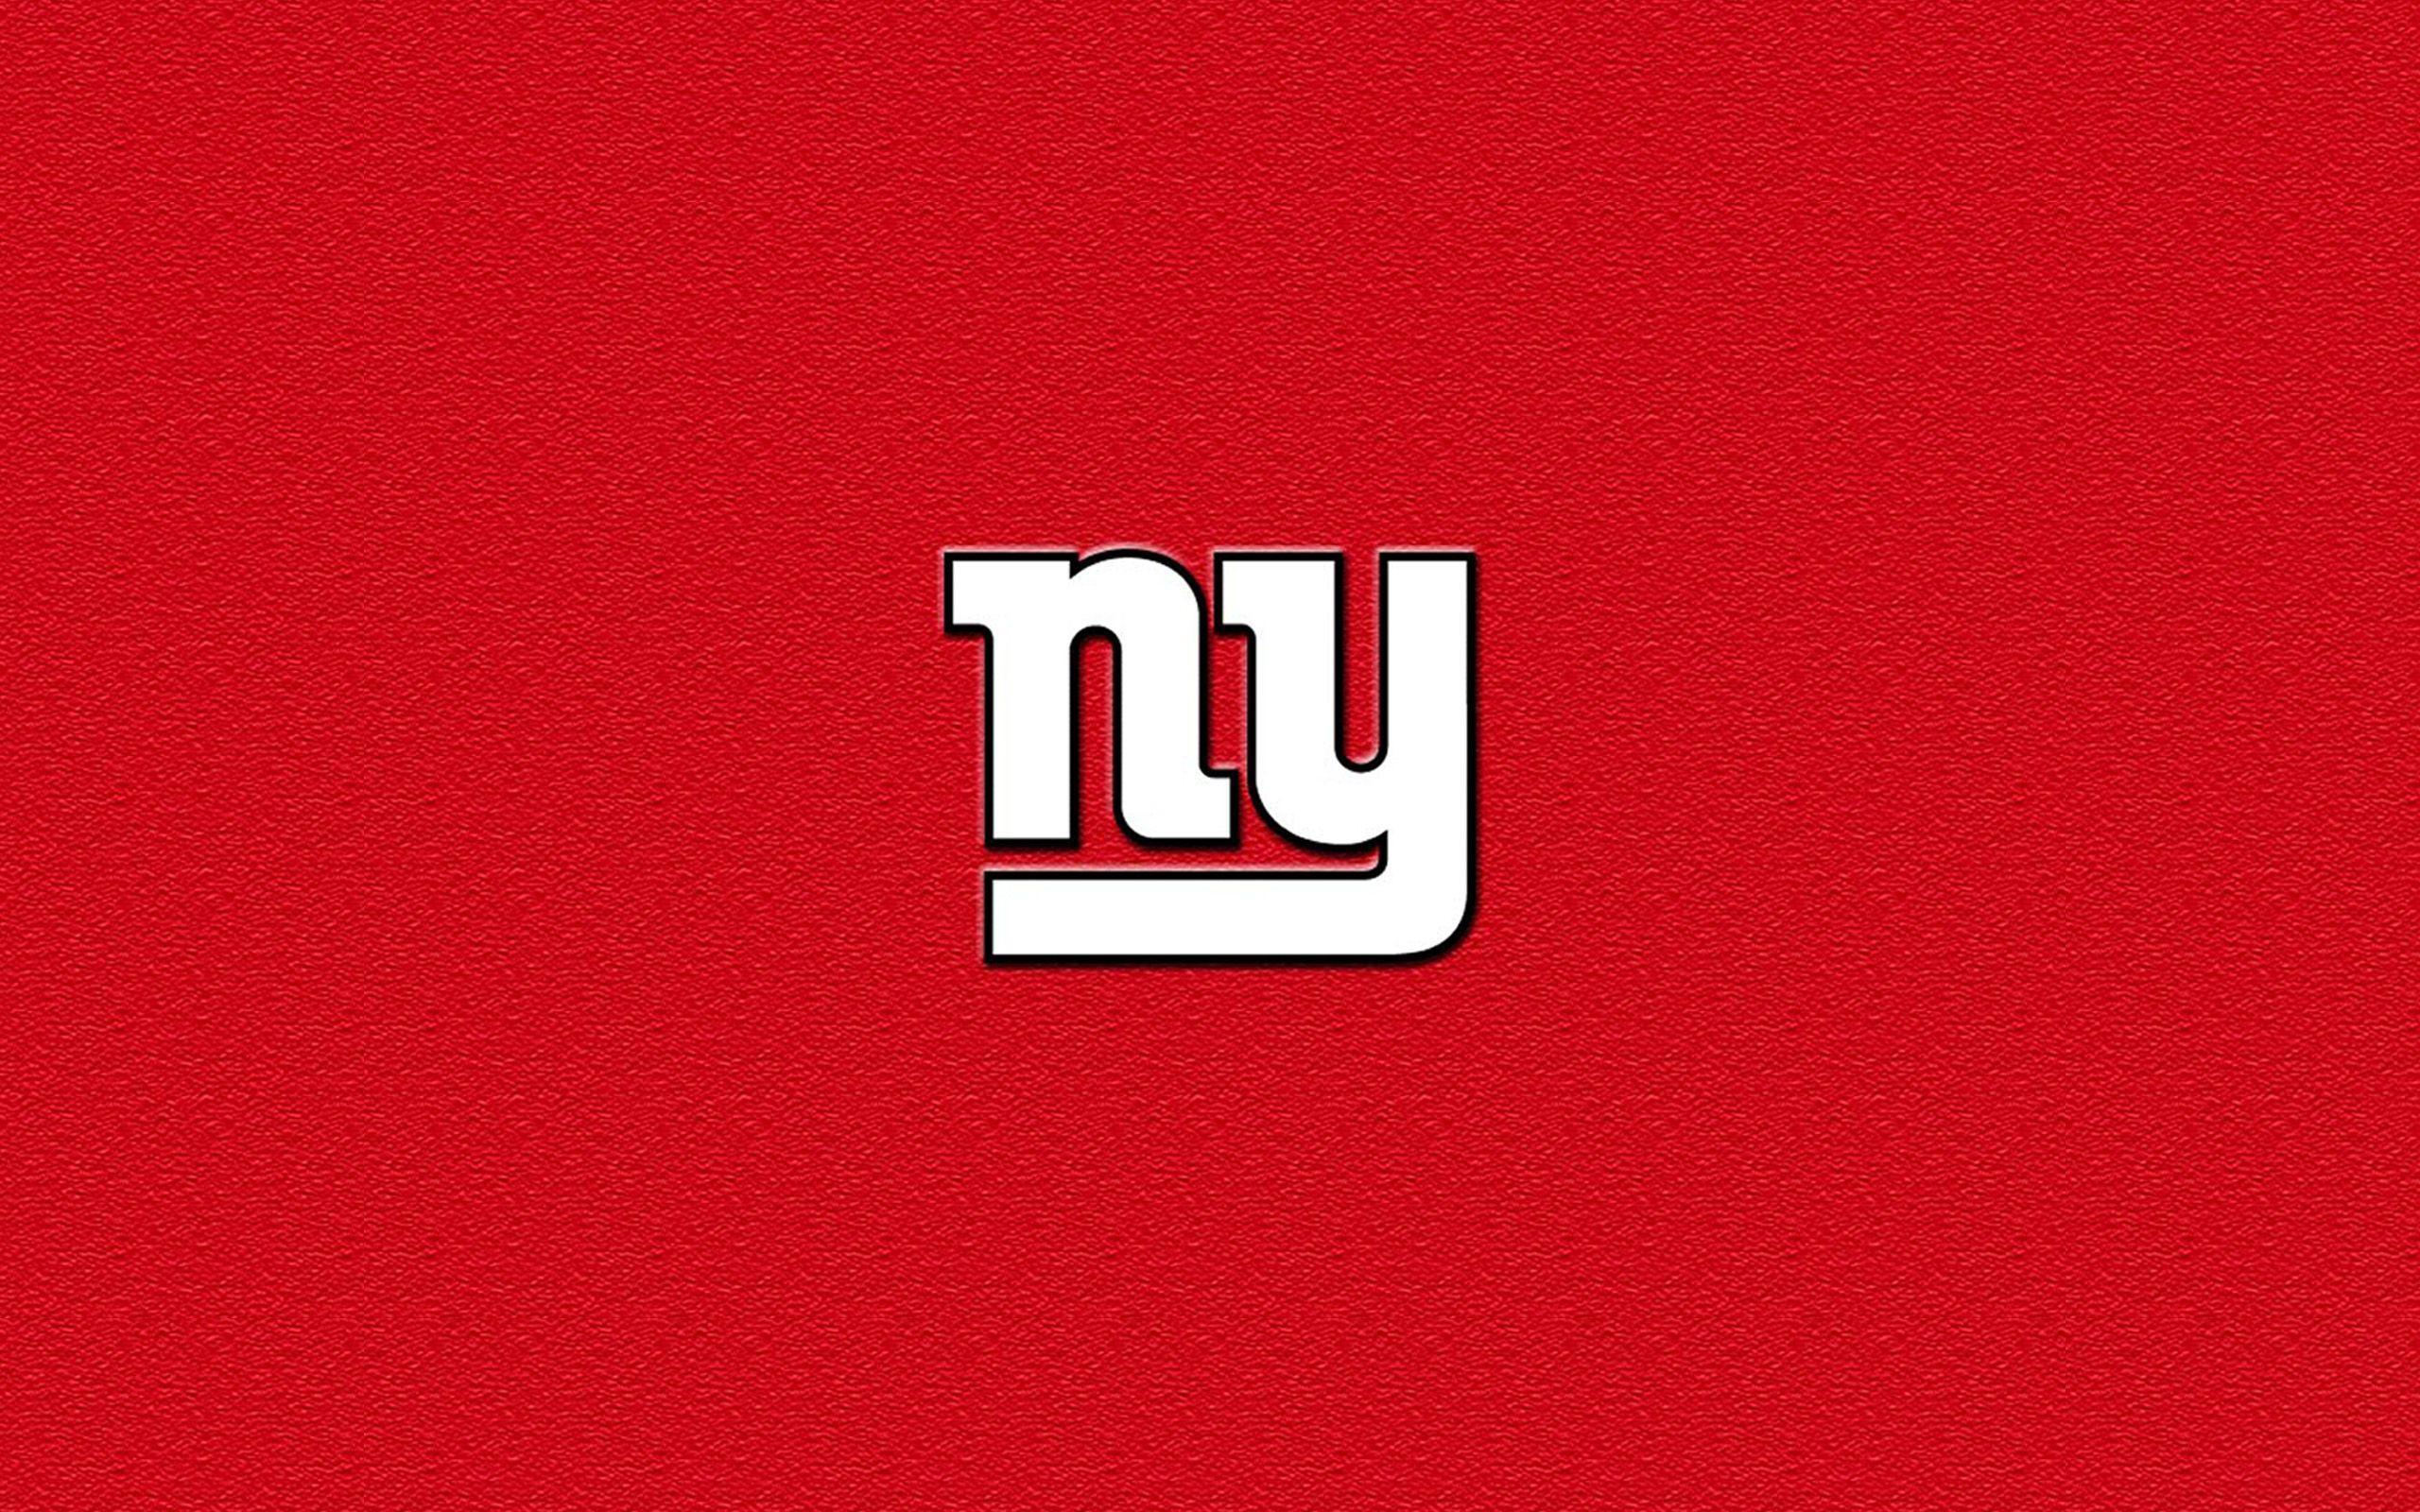 Red New York Giants Wallpapers 7584 2560 x 1600